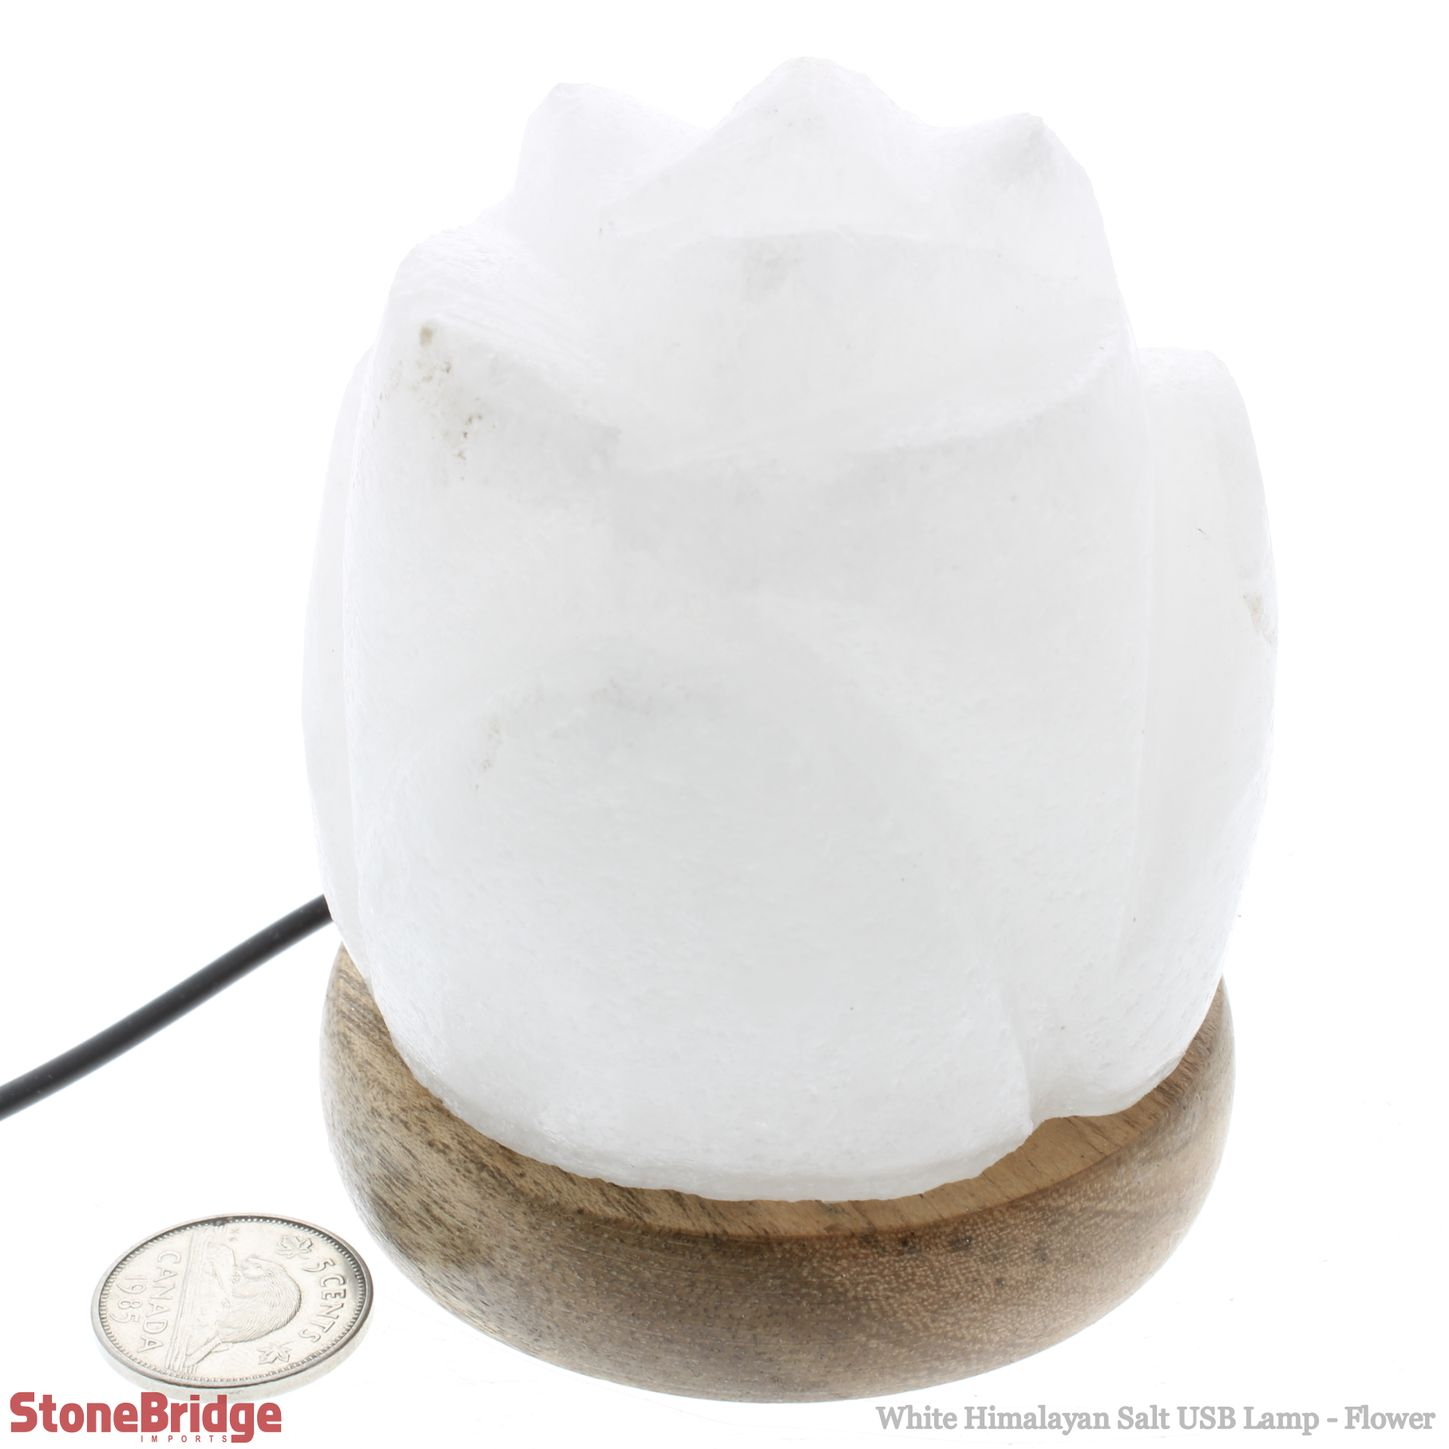 LASAUSRWfl_White Himalayan Salt USB Lamp Flower_10.jpg